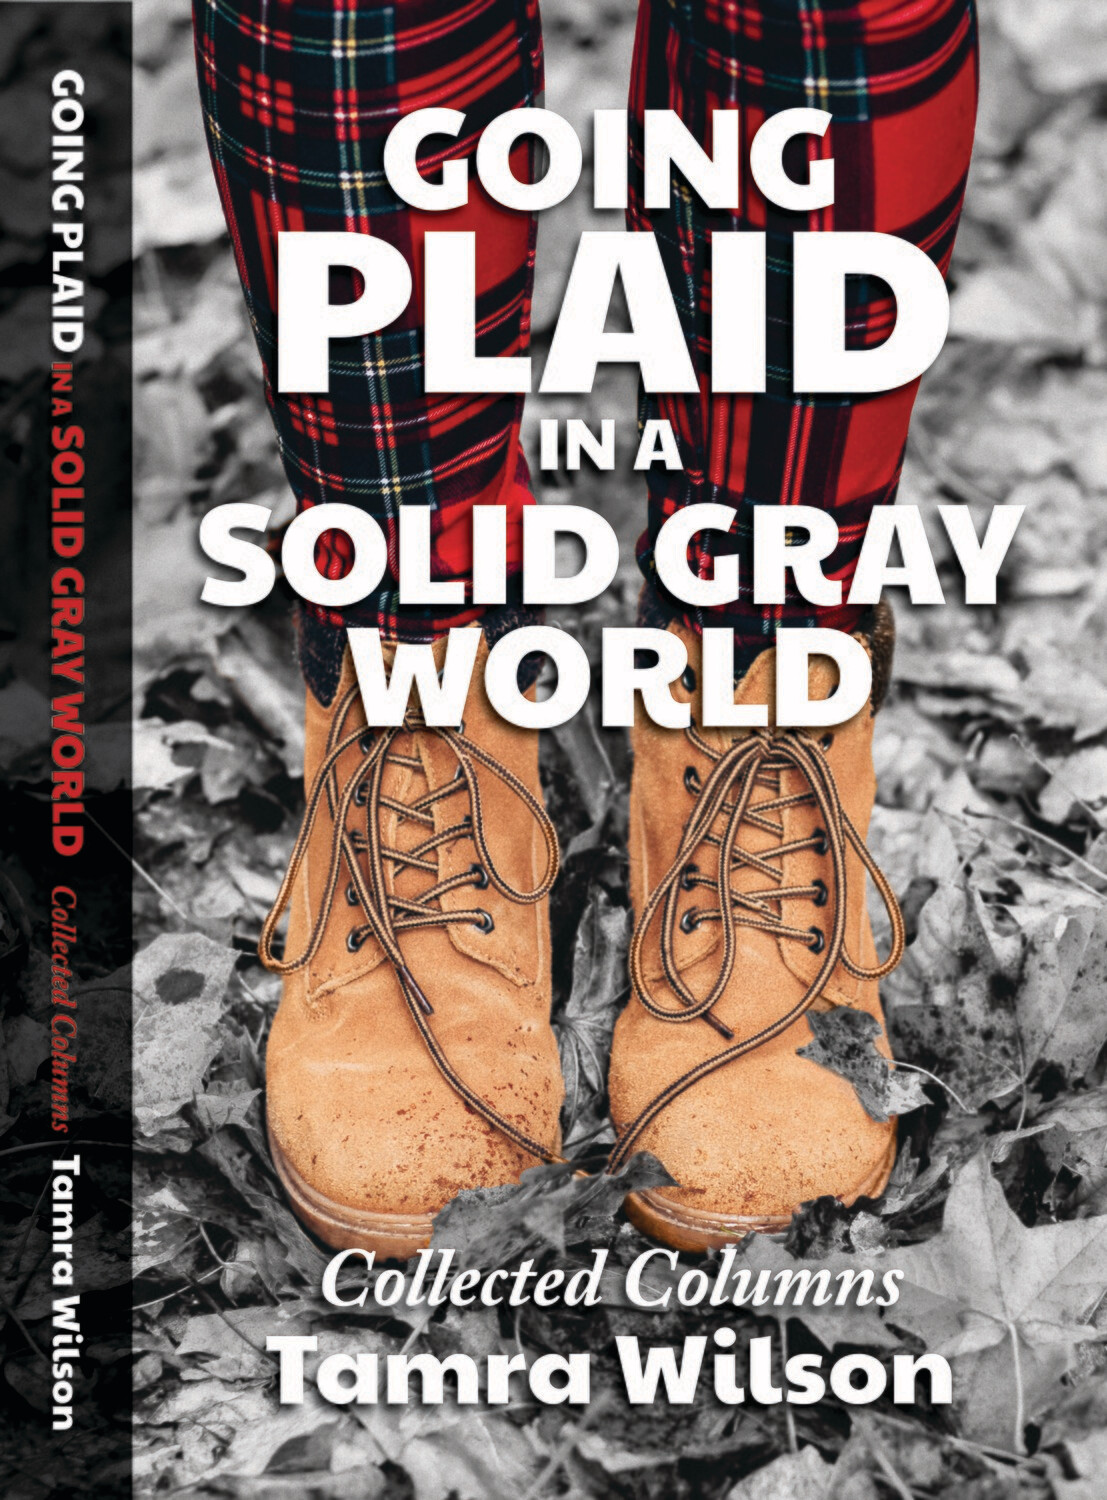 Going Plaid in a Solid Gray World